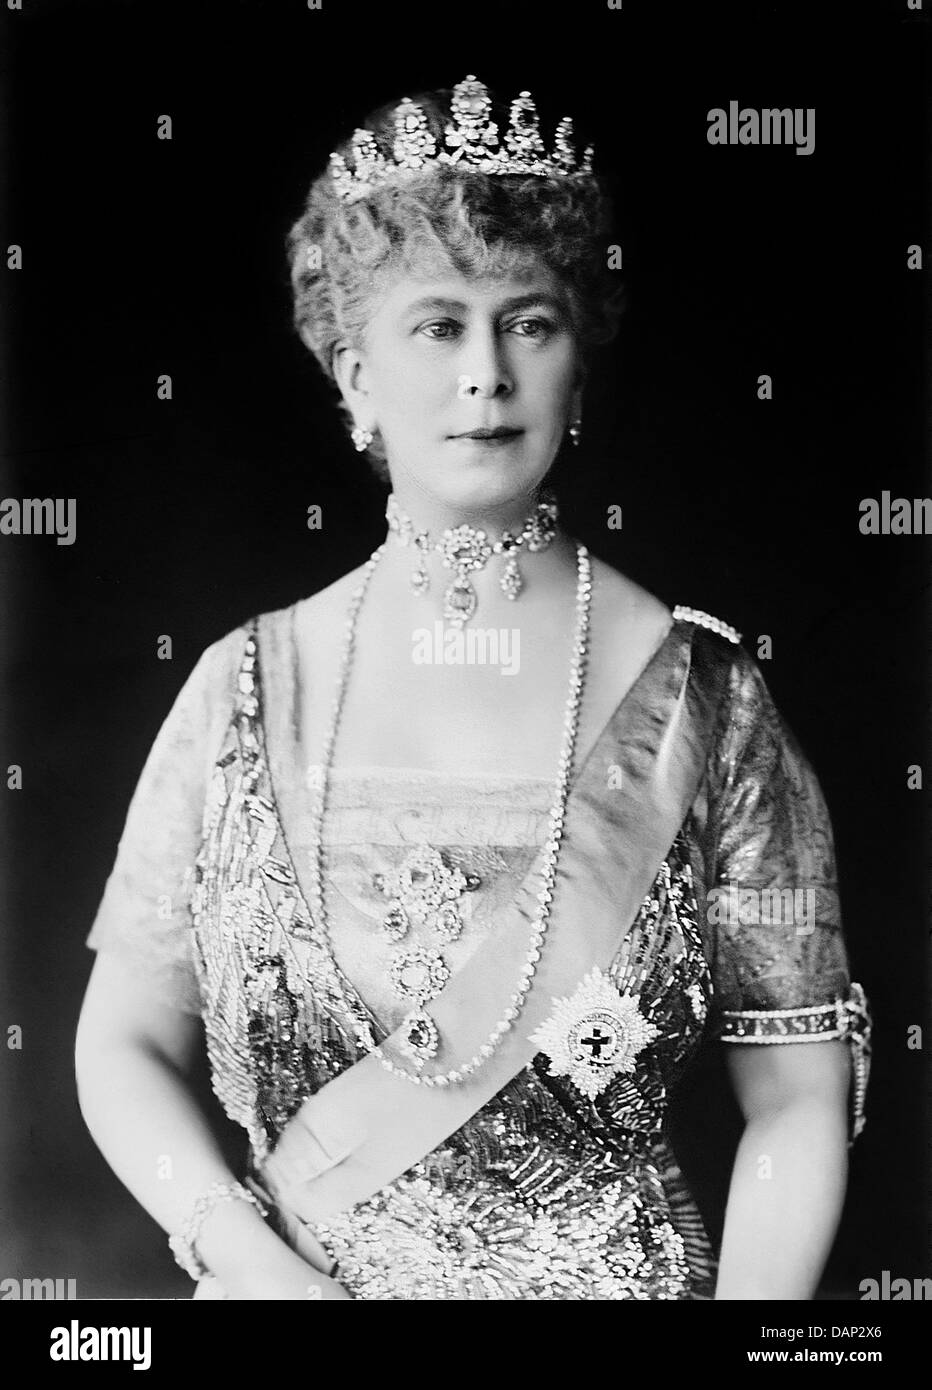 QUEEN MARY OF TECK (1867-1953) wife of King George V - Stock Image